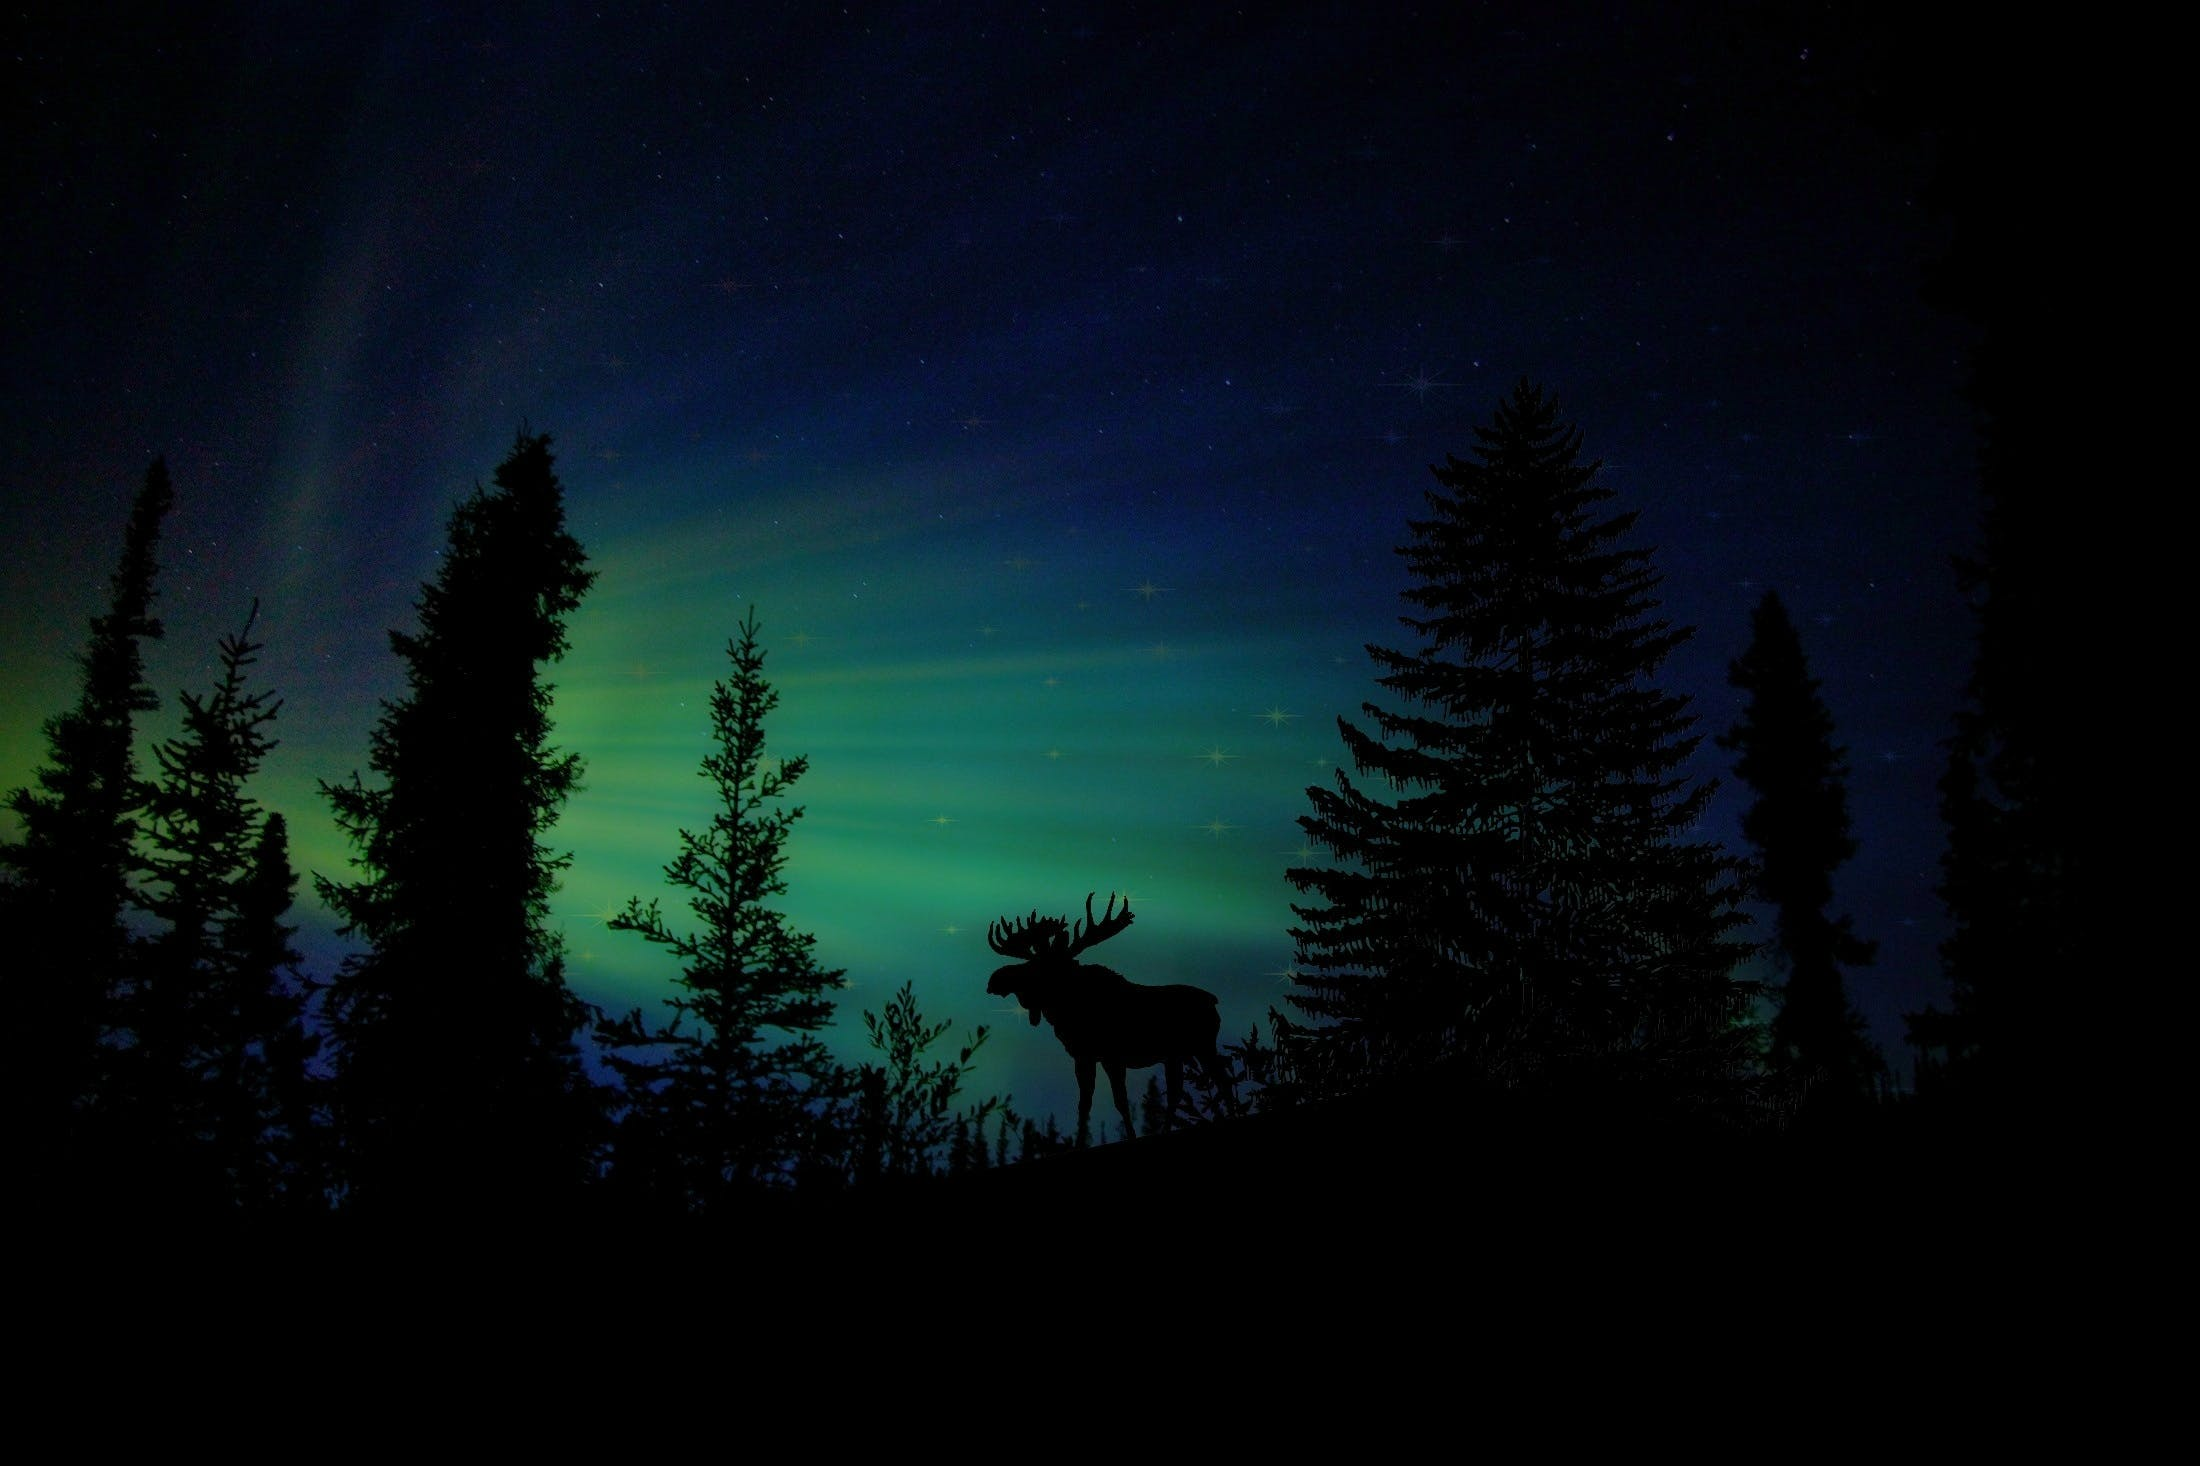 Silhouette Photography of Reindeer Under Aurora Lights